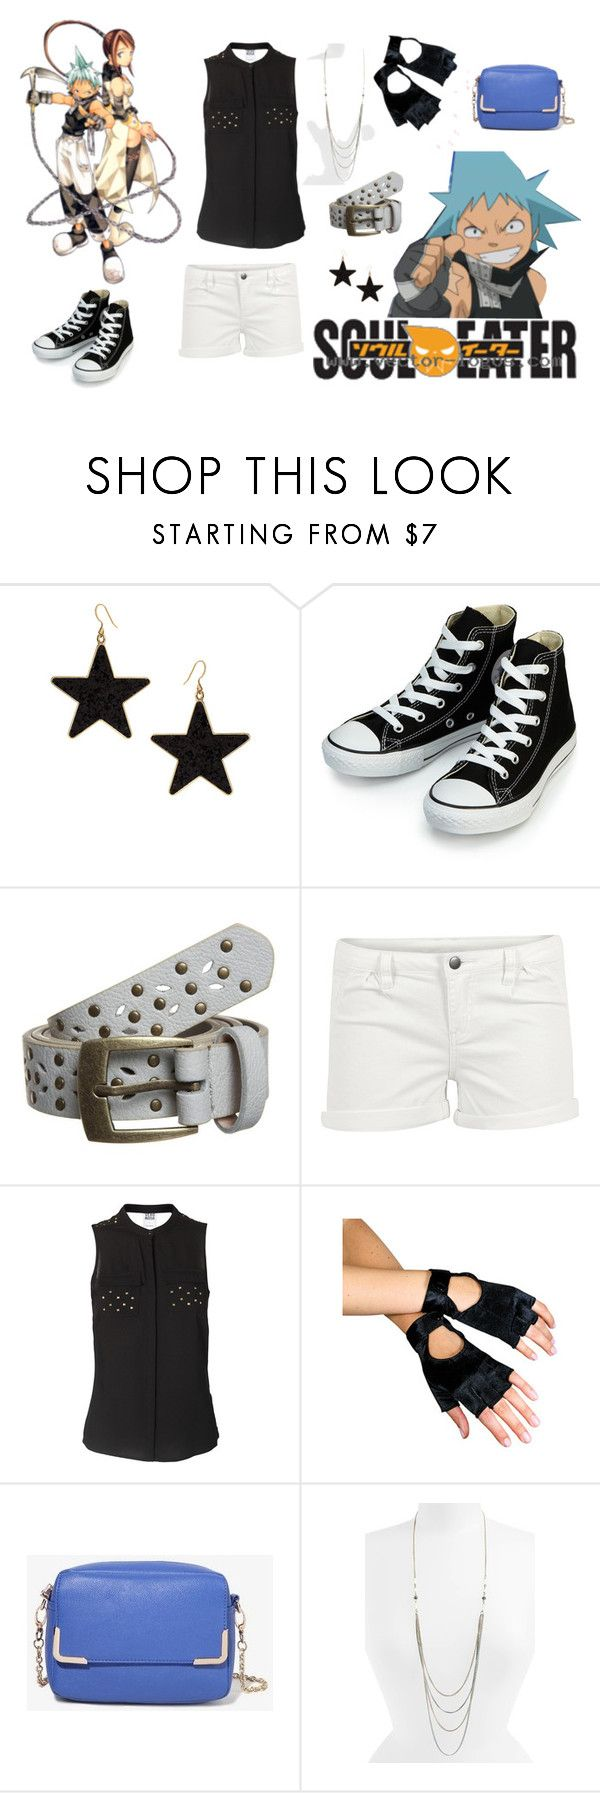 """Black Star Soul Eater Outfit for Girls"" by taylor-crawley ❤ liked on Polyvore featuring Talullah Tu, Converse, even&odd, Pieces, Vero Moda, Forever 21 and Rachel"